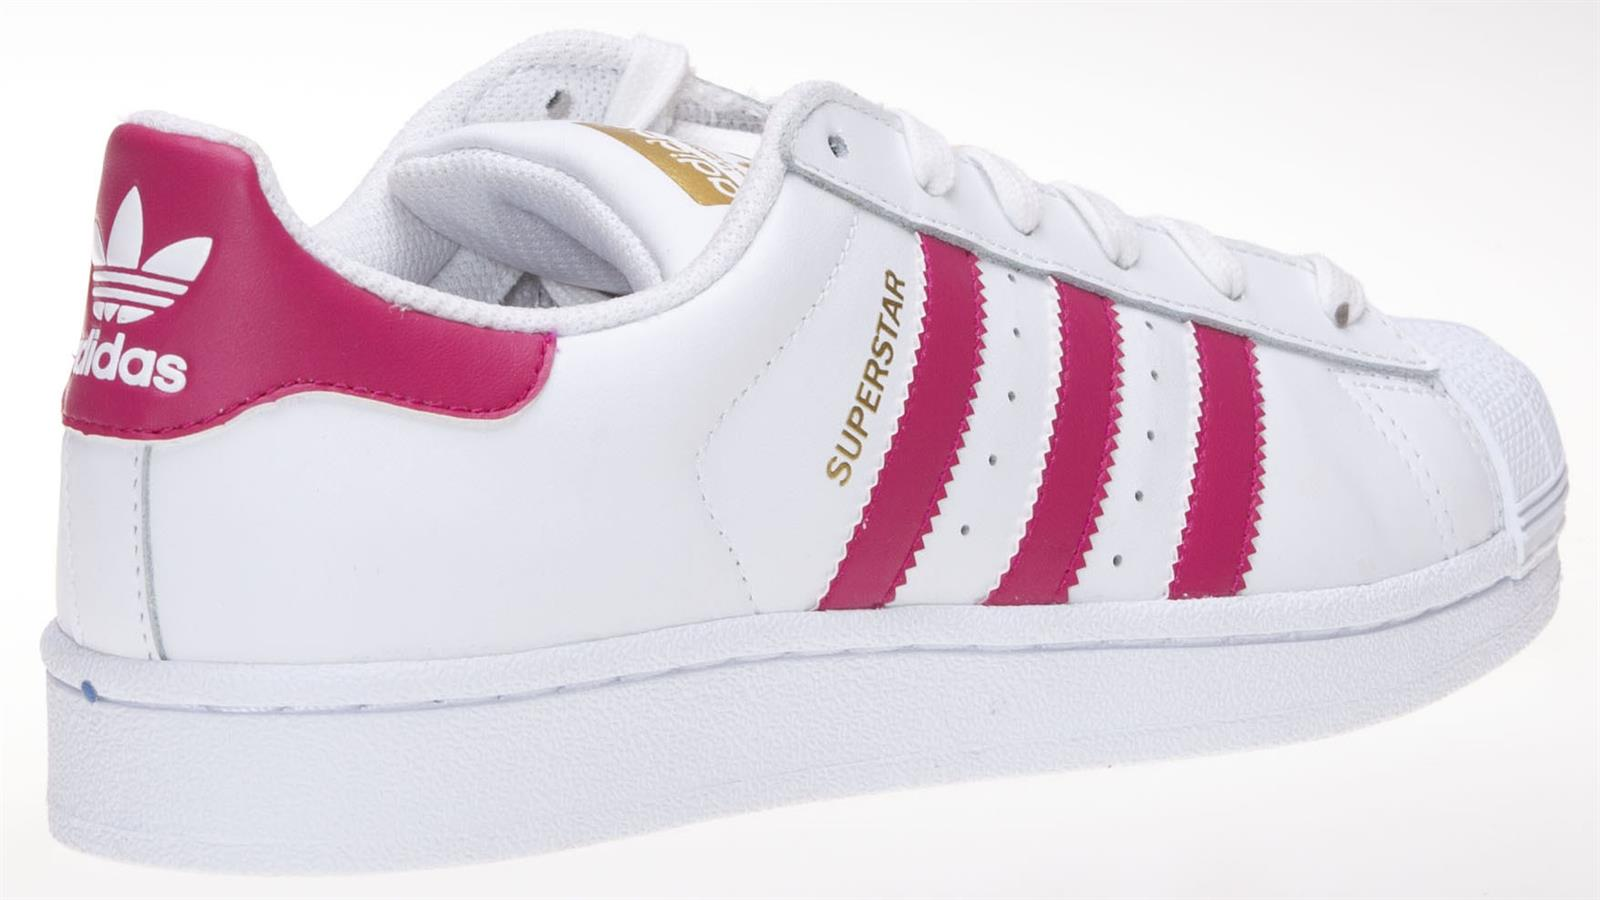 adidas superstar foundation adidas r1 primeknit blue and pink